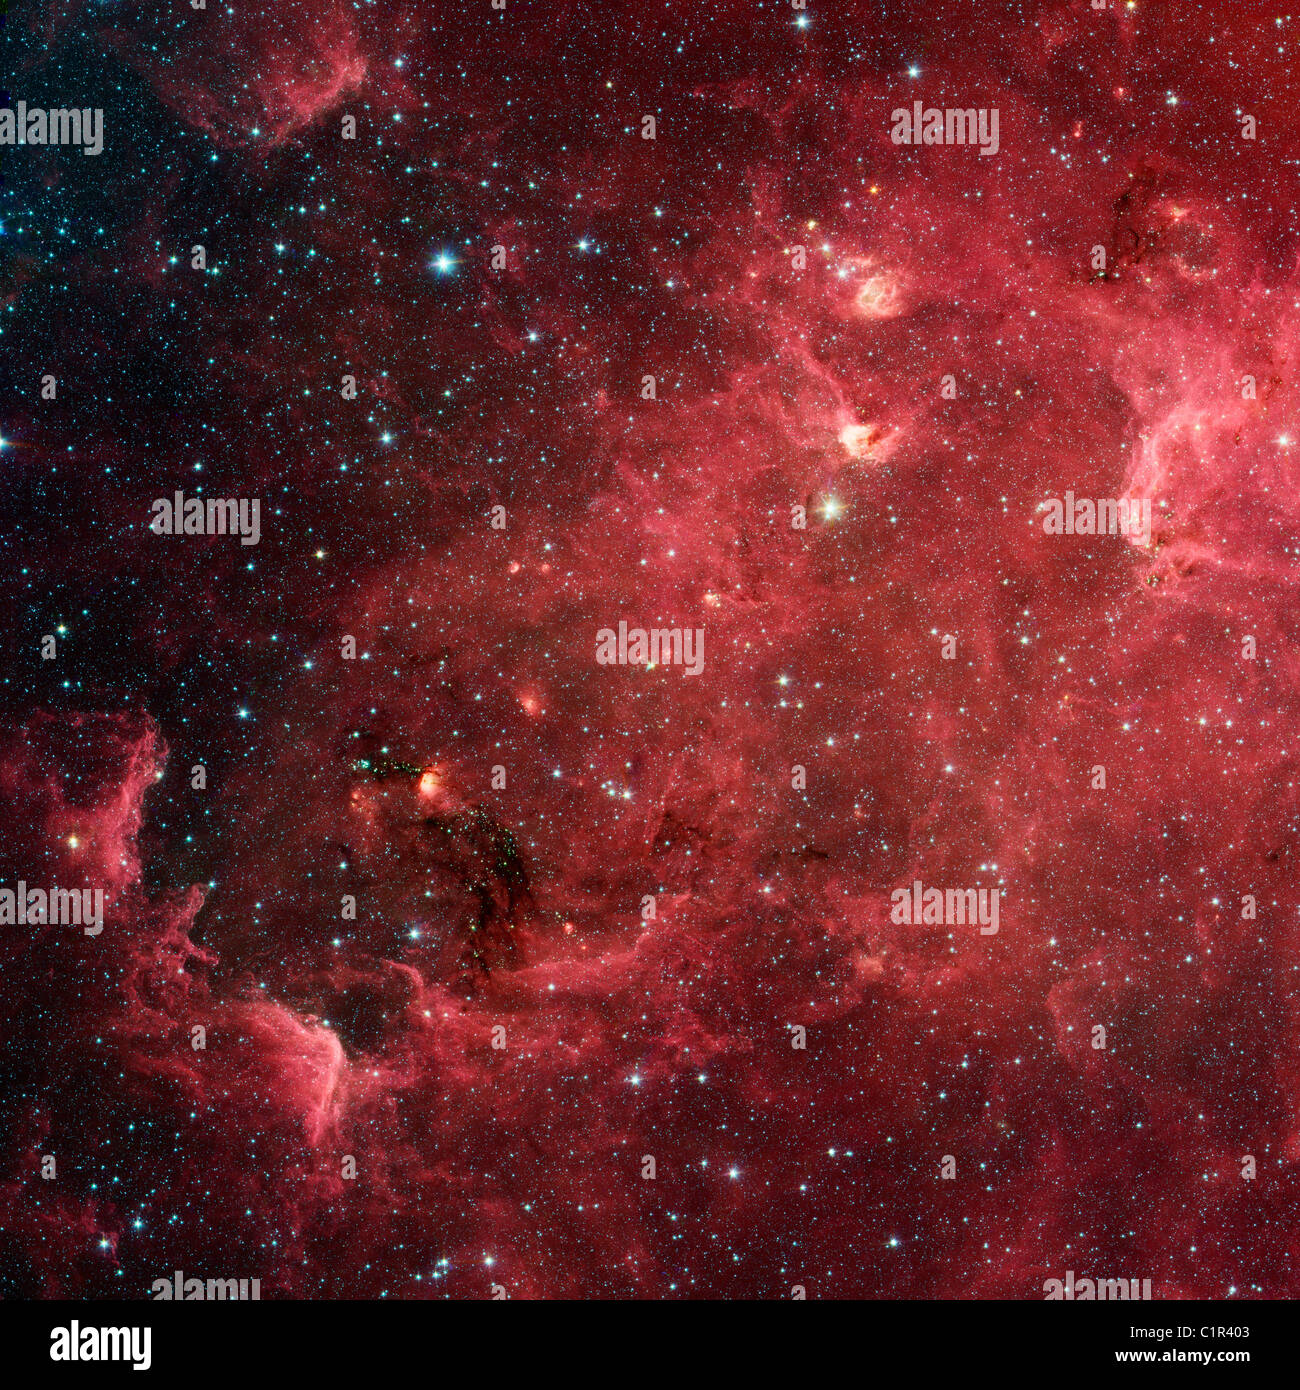 swirling stars the North America Nebula. region resembles North America, new infrared view NASA's Spitzer Space - Stock Image